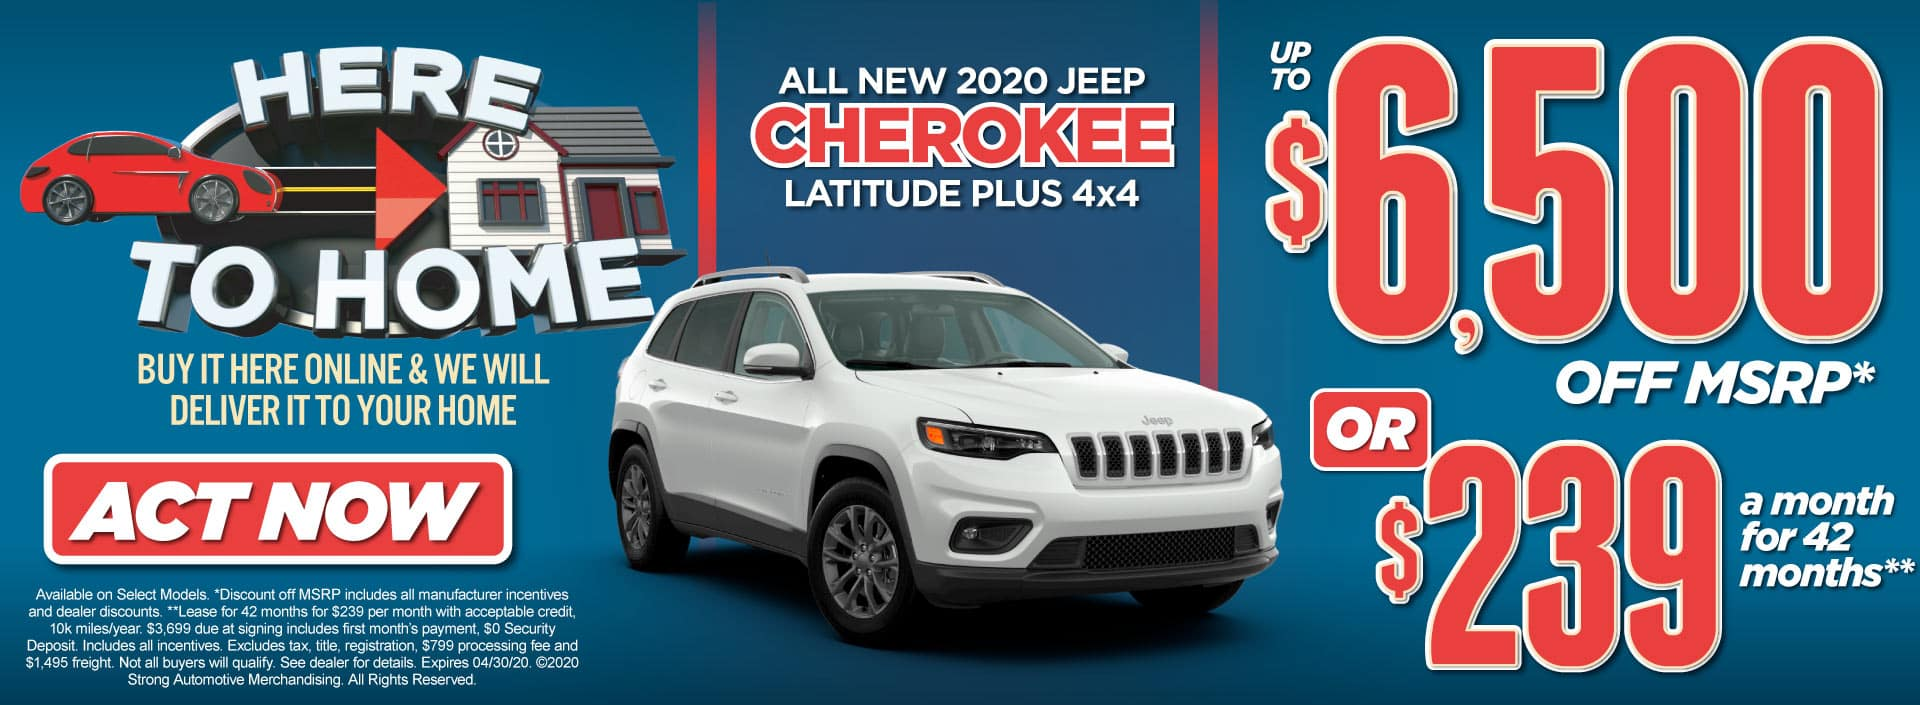 New 2020 Jeep Cherokee Special Act Now